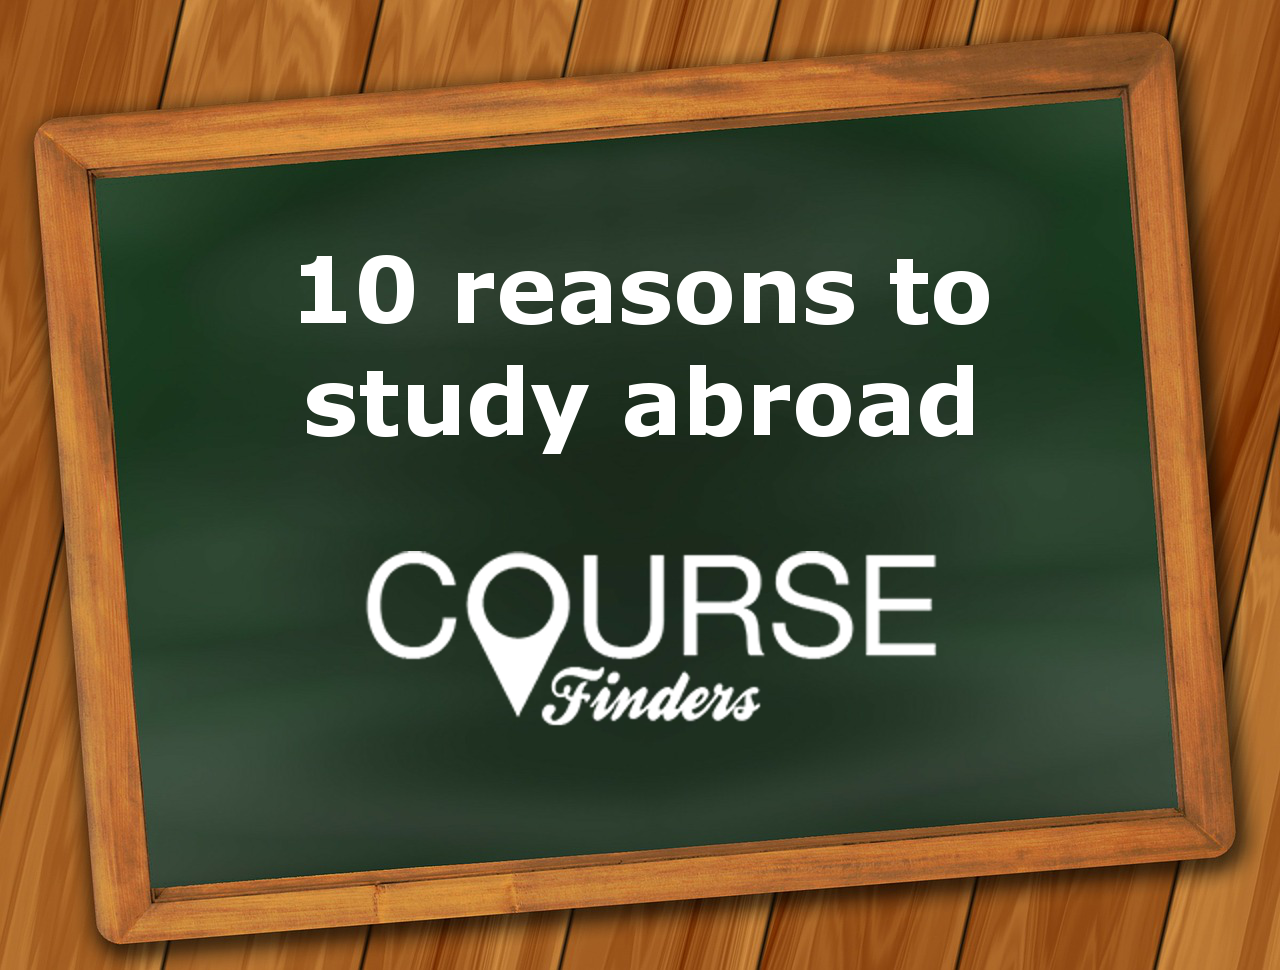 reasons-to-study-abroad